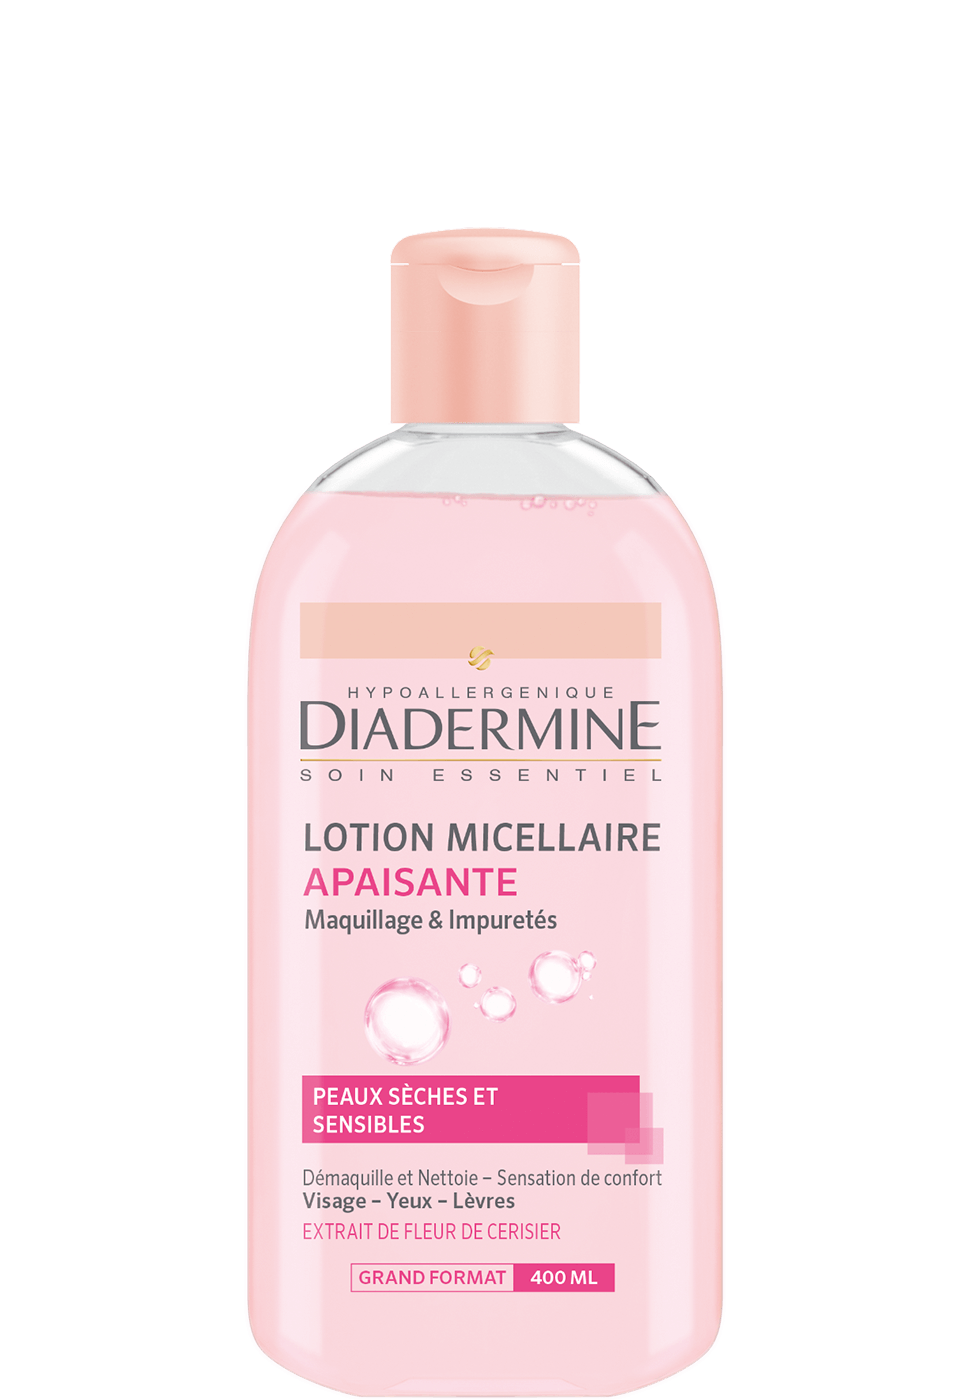 diadermine_com_essentials_comforting_micellar_lotion_970x1400